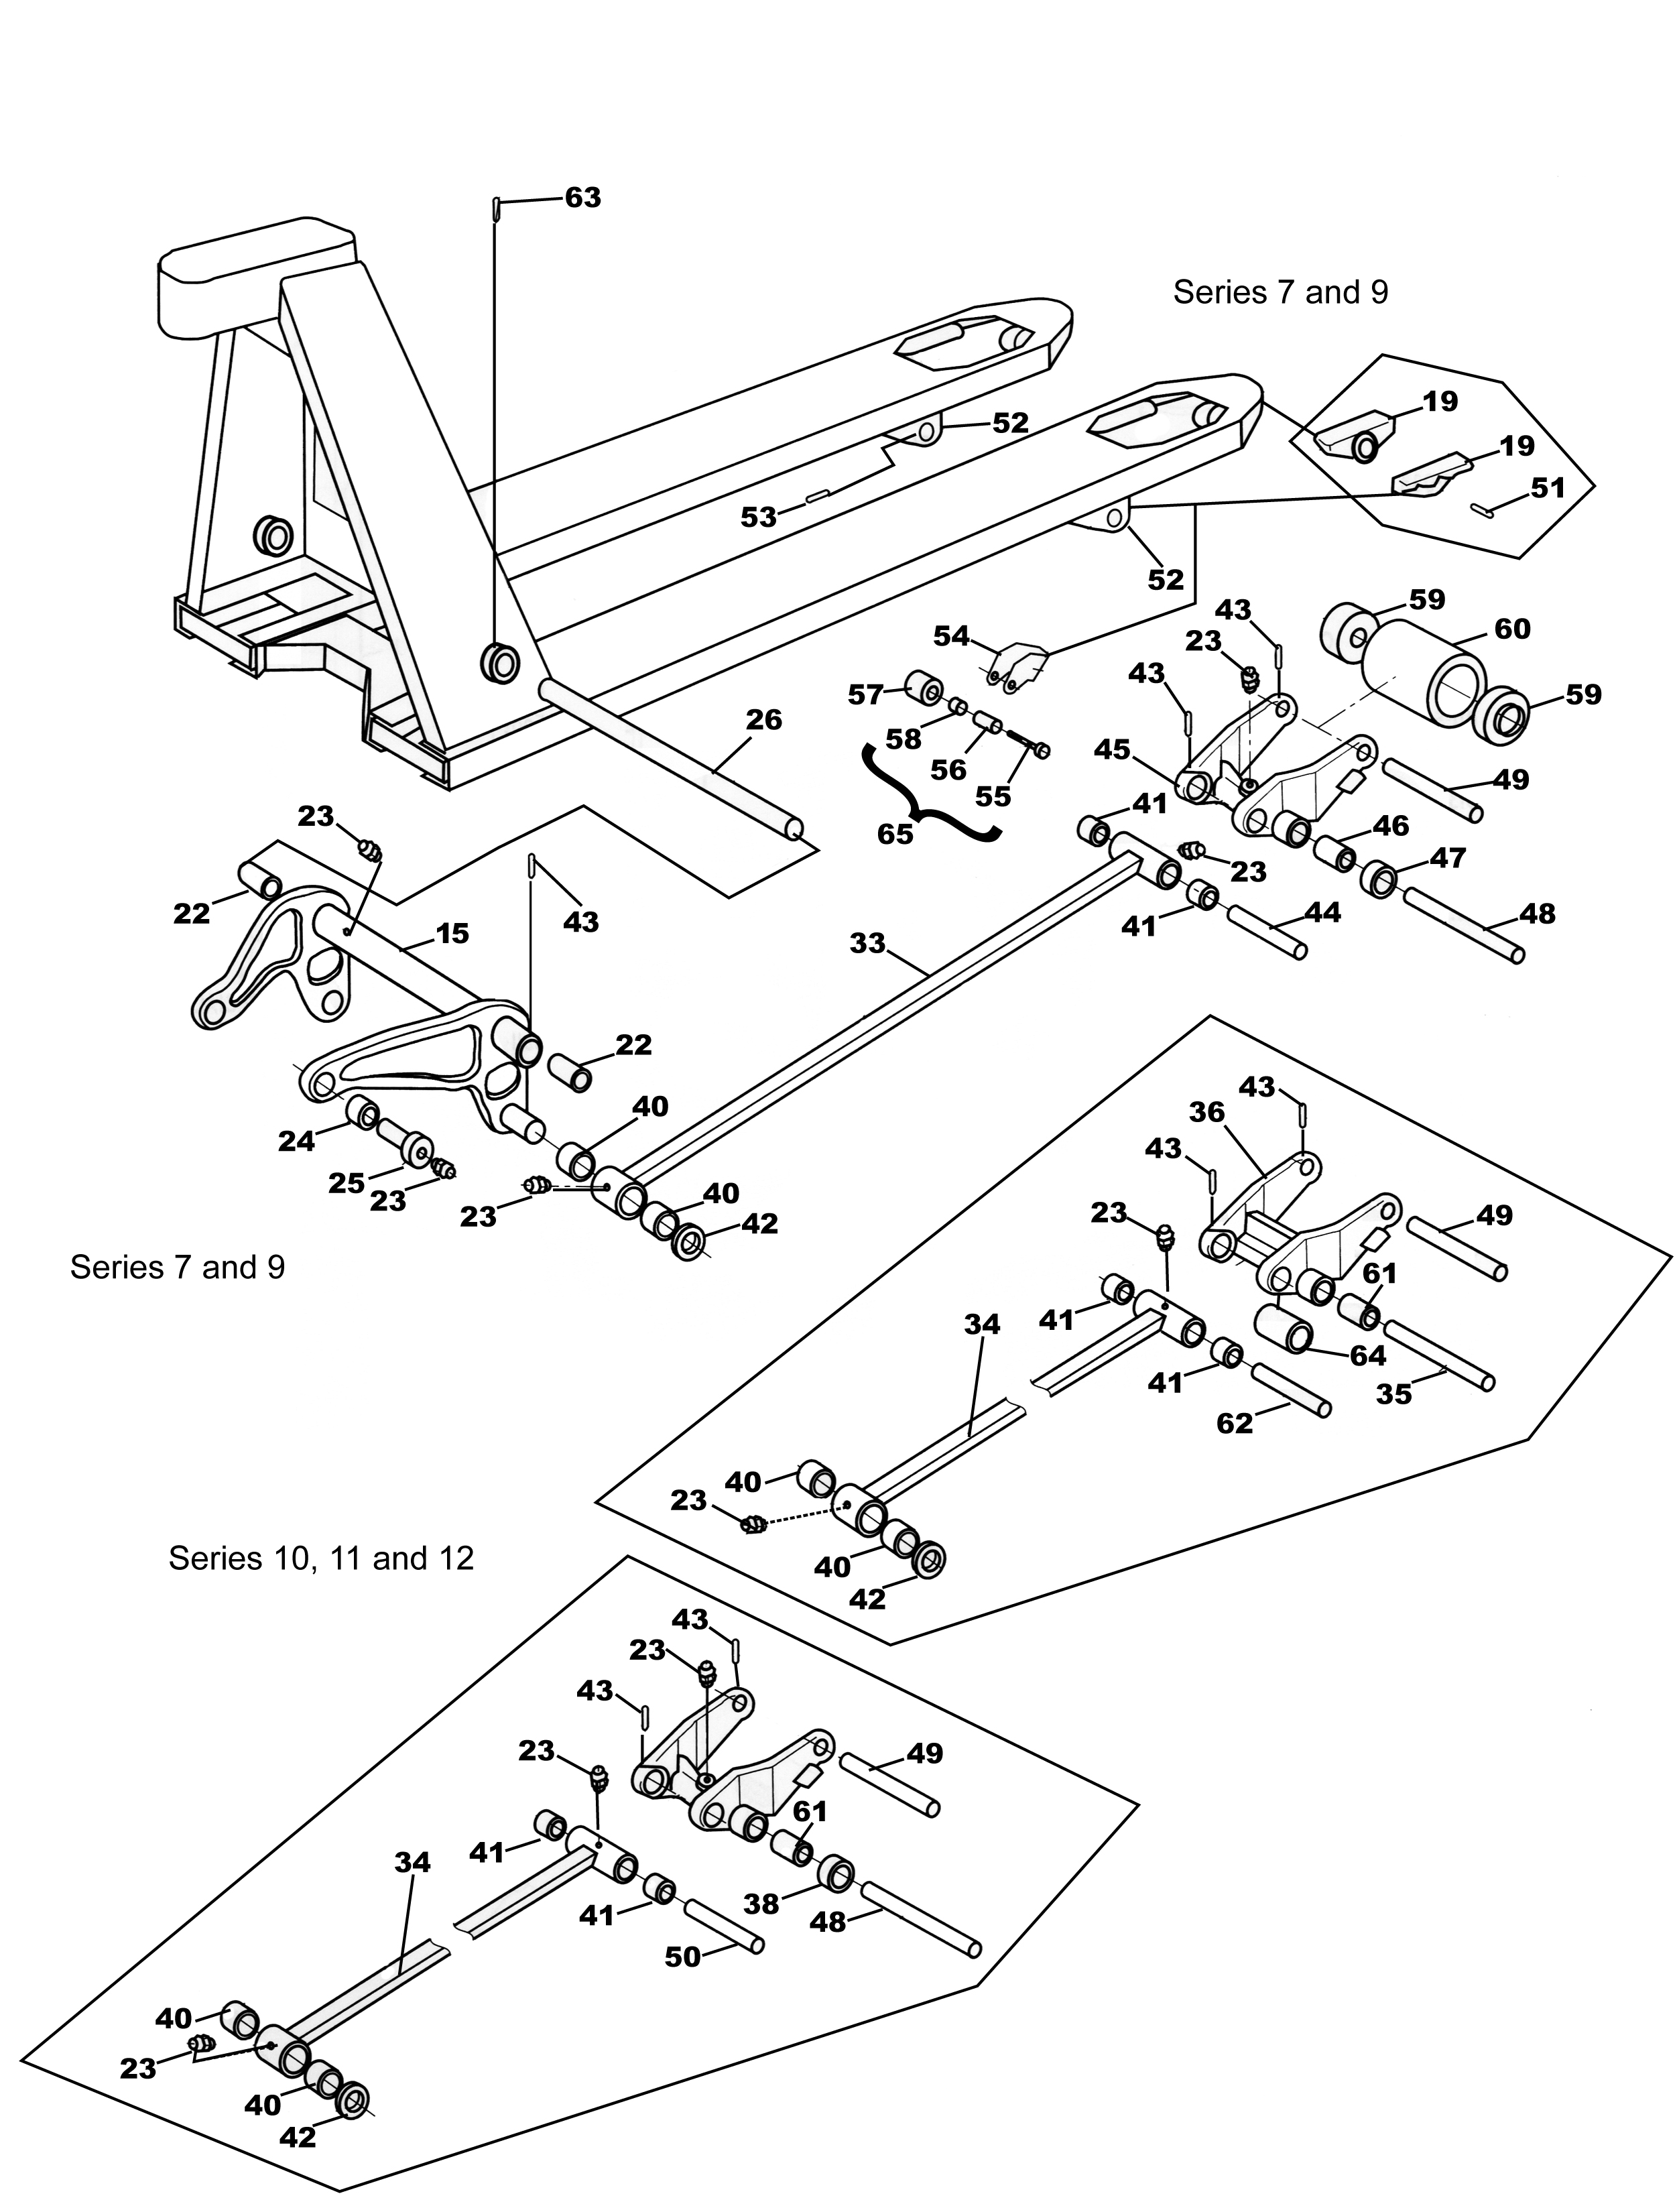 Parts for the BT L2000-U and L-2300-U Frame